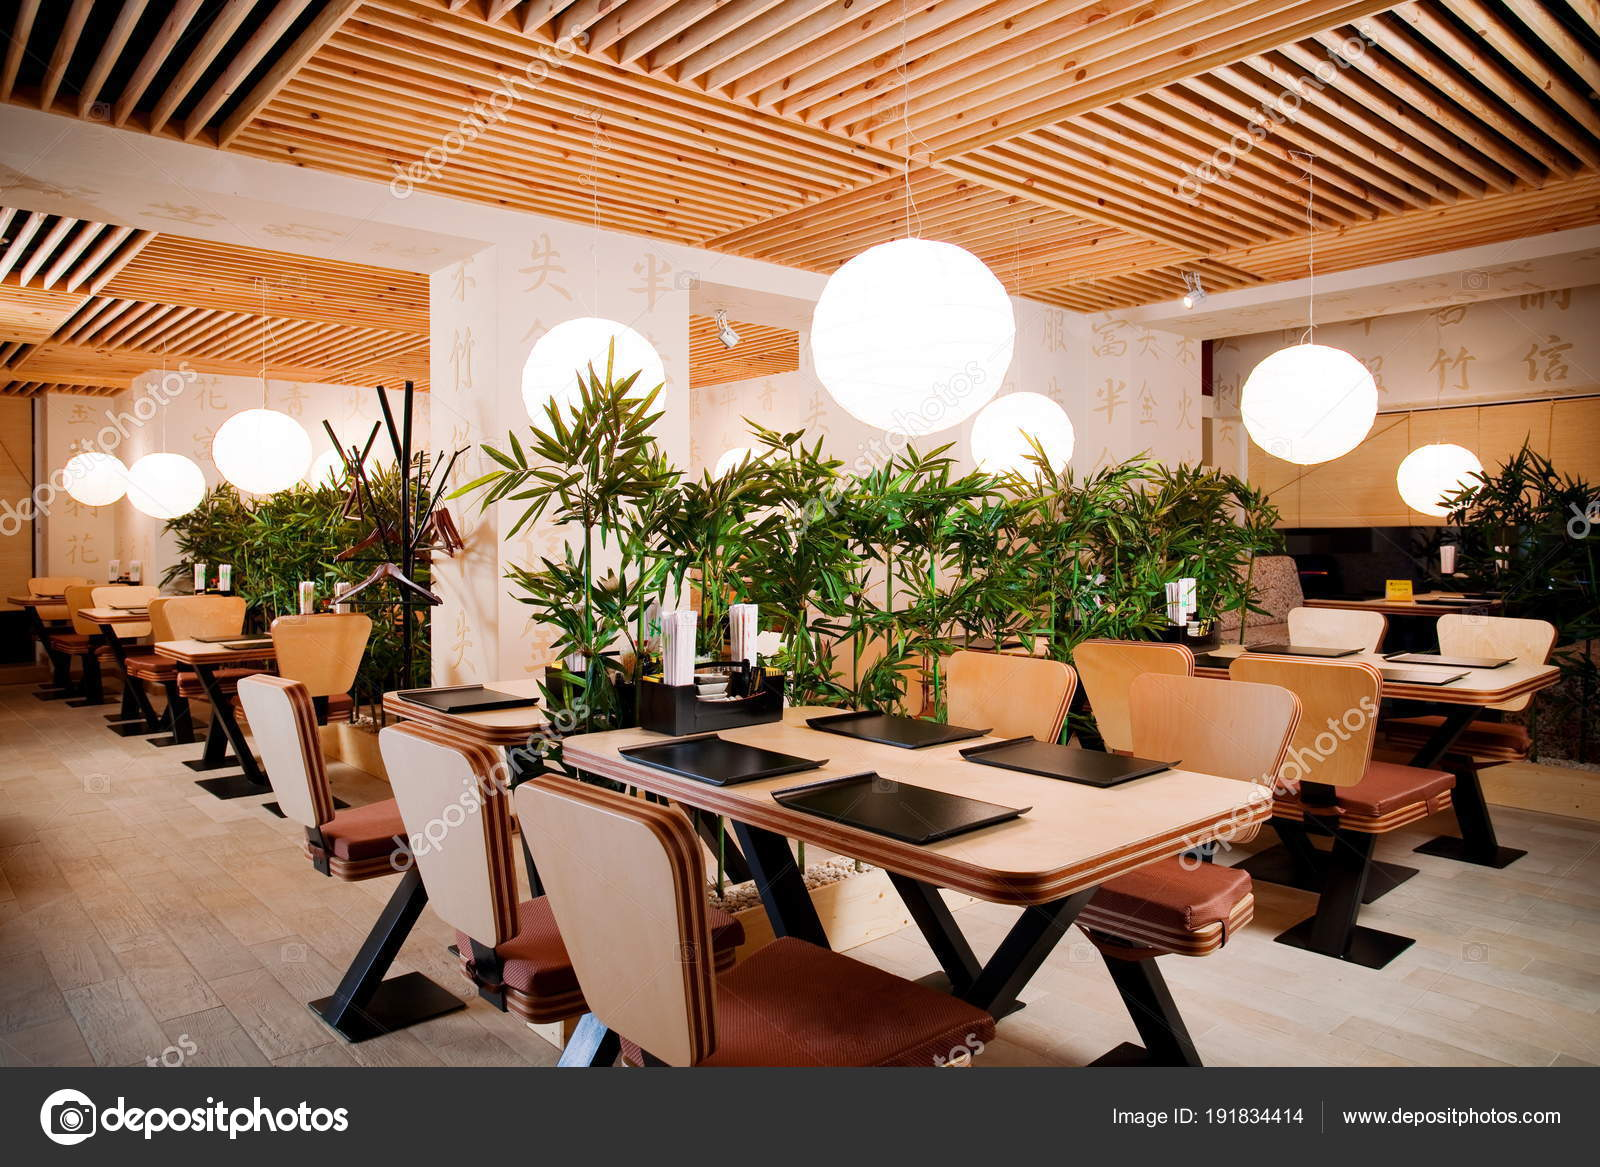 asian restaurant interior with wooden ceiling and walls and green